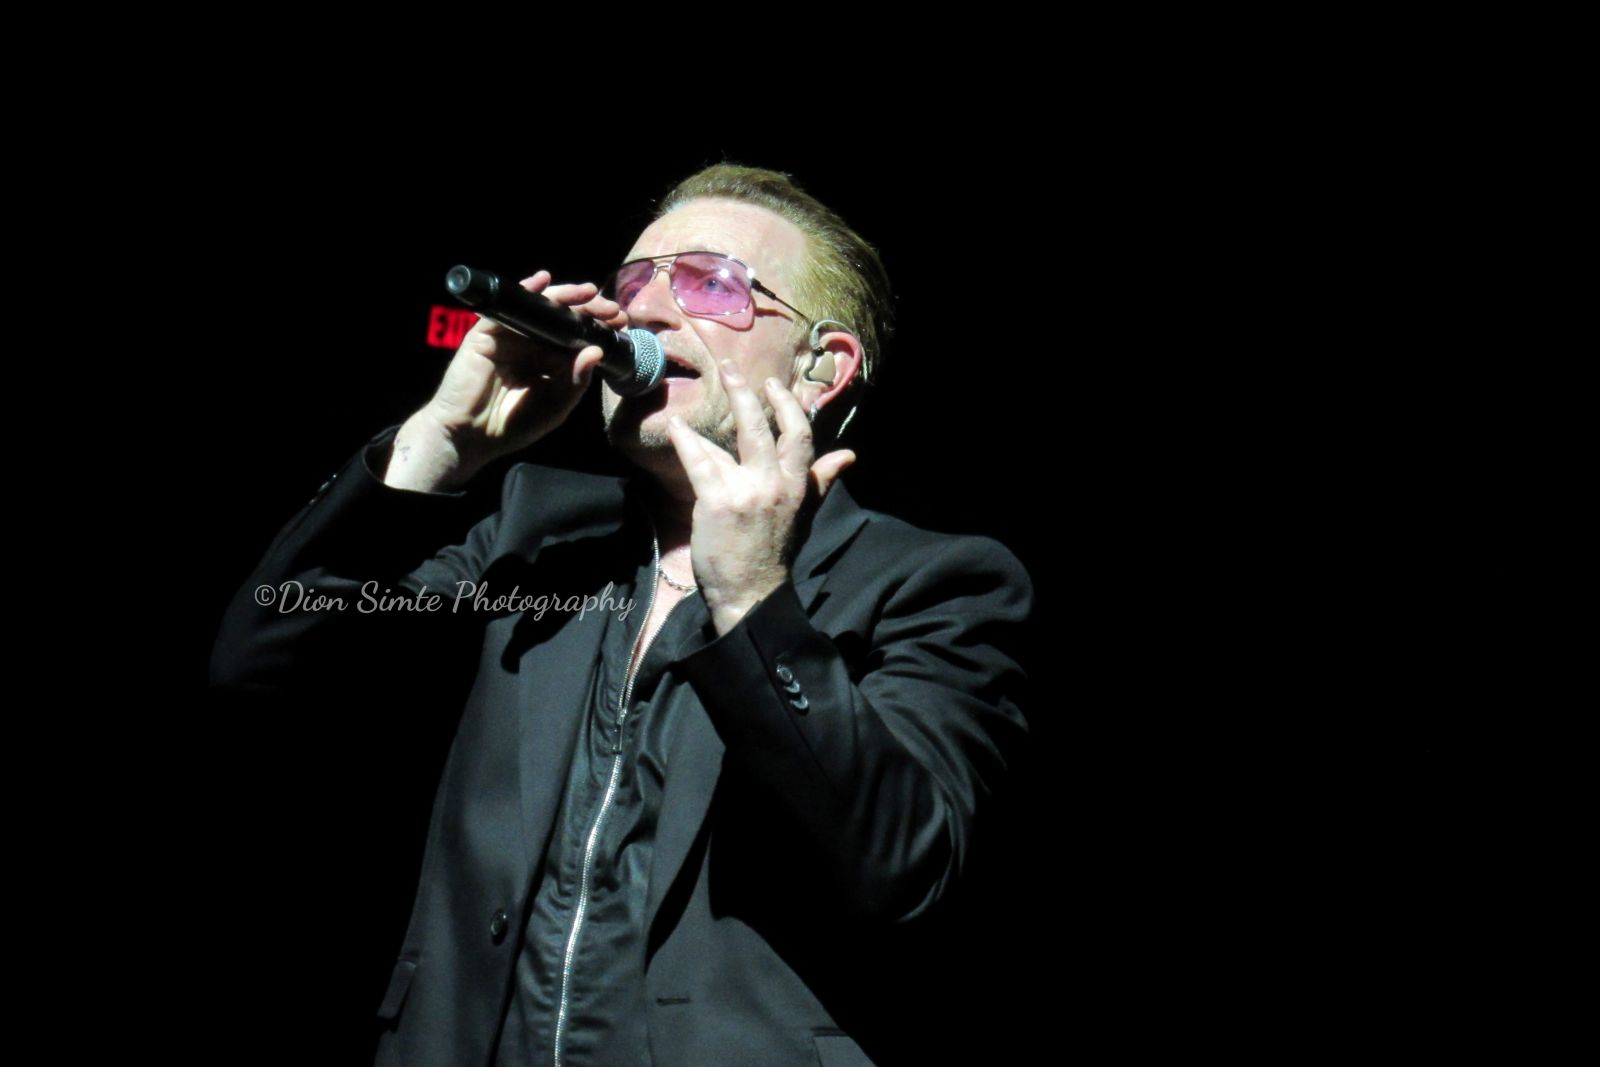 Bono on stage in Phoenix, AZ 5/22/2015